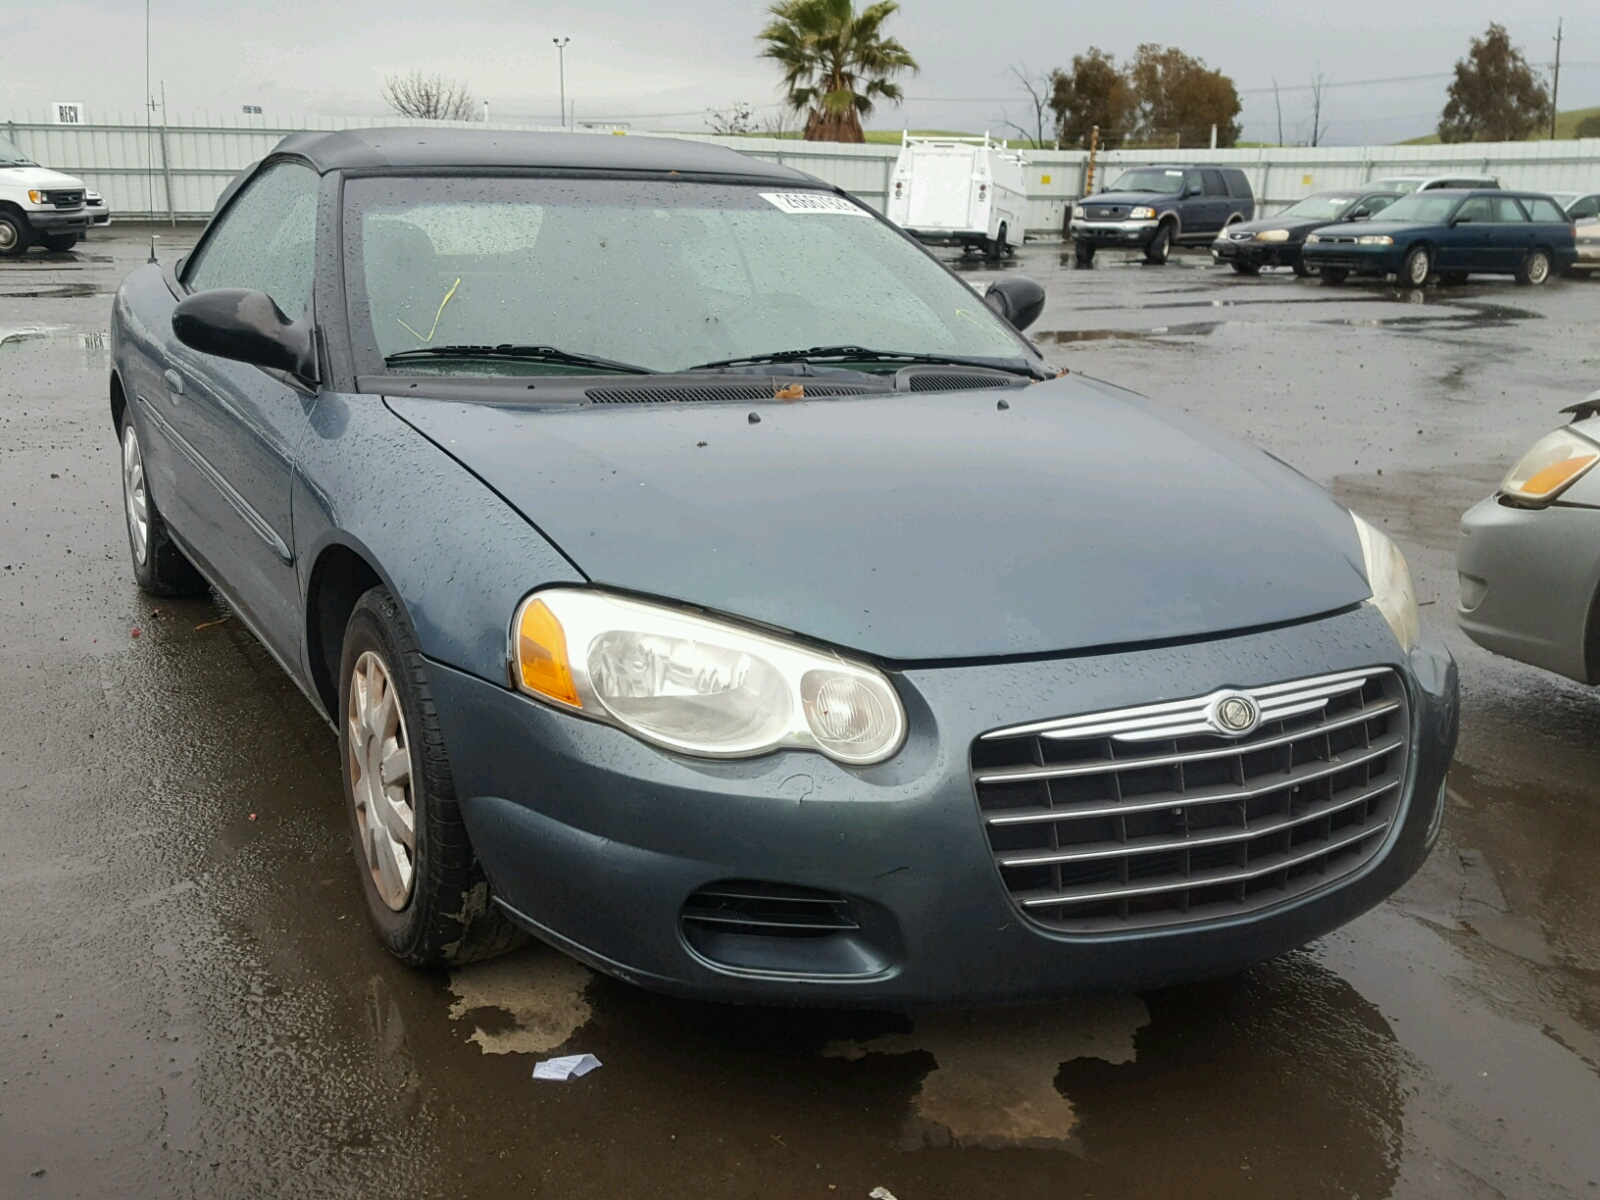 a and lx if be chrysler pic cars change more sale bumper also would replace am to for discussion headlights lot sebring can it questions convertible have wondering or i the